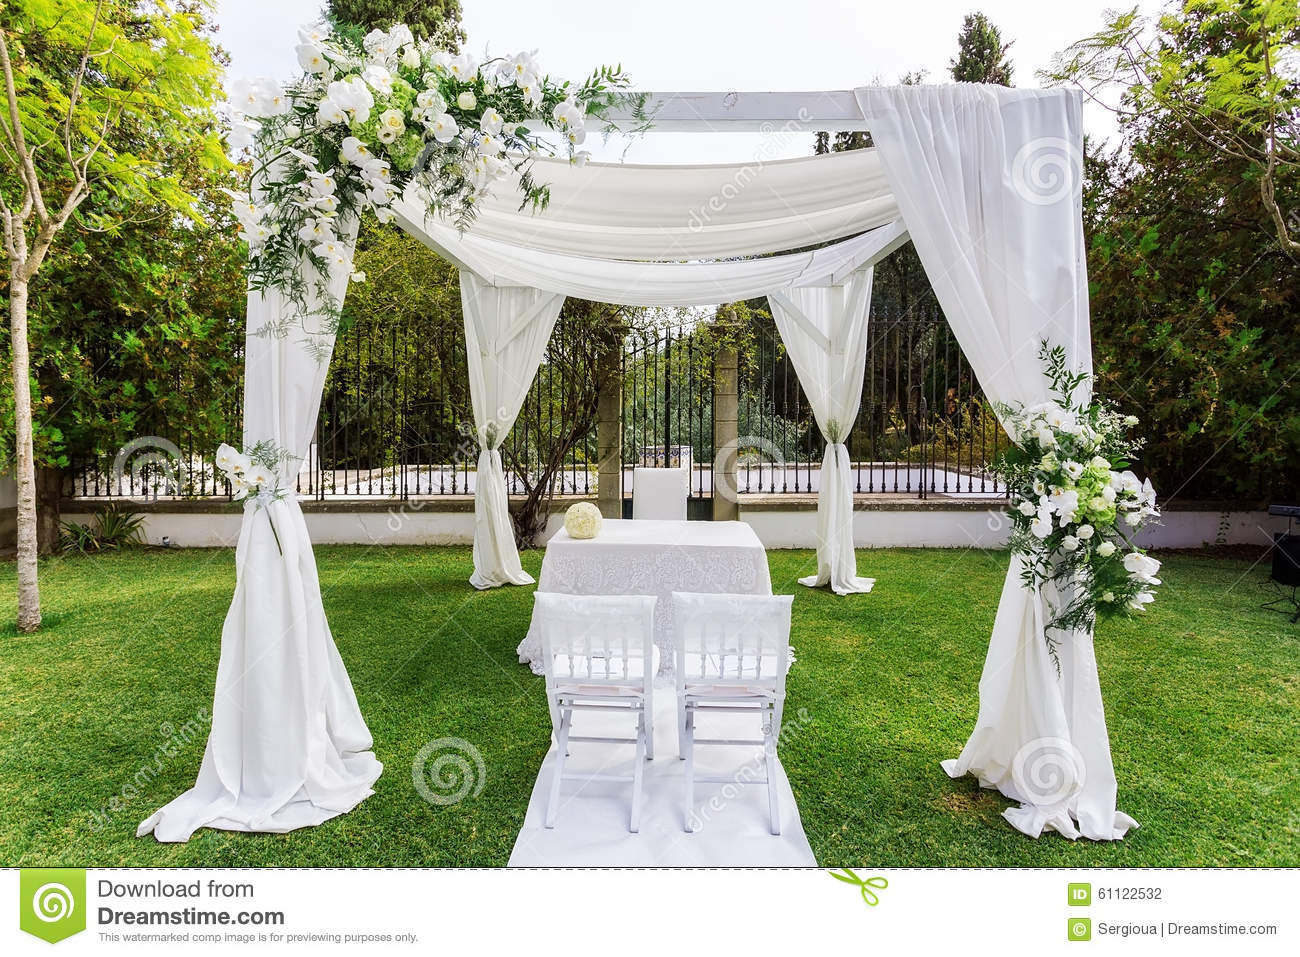 silk tent for the wedding ceremony for the newlyweds the